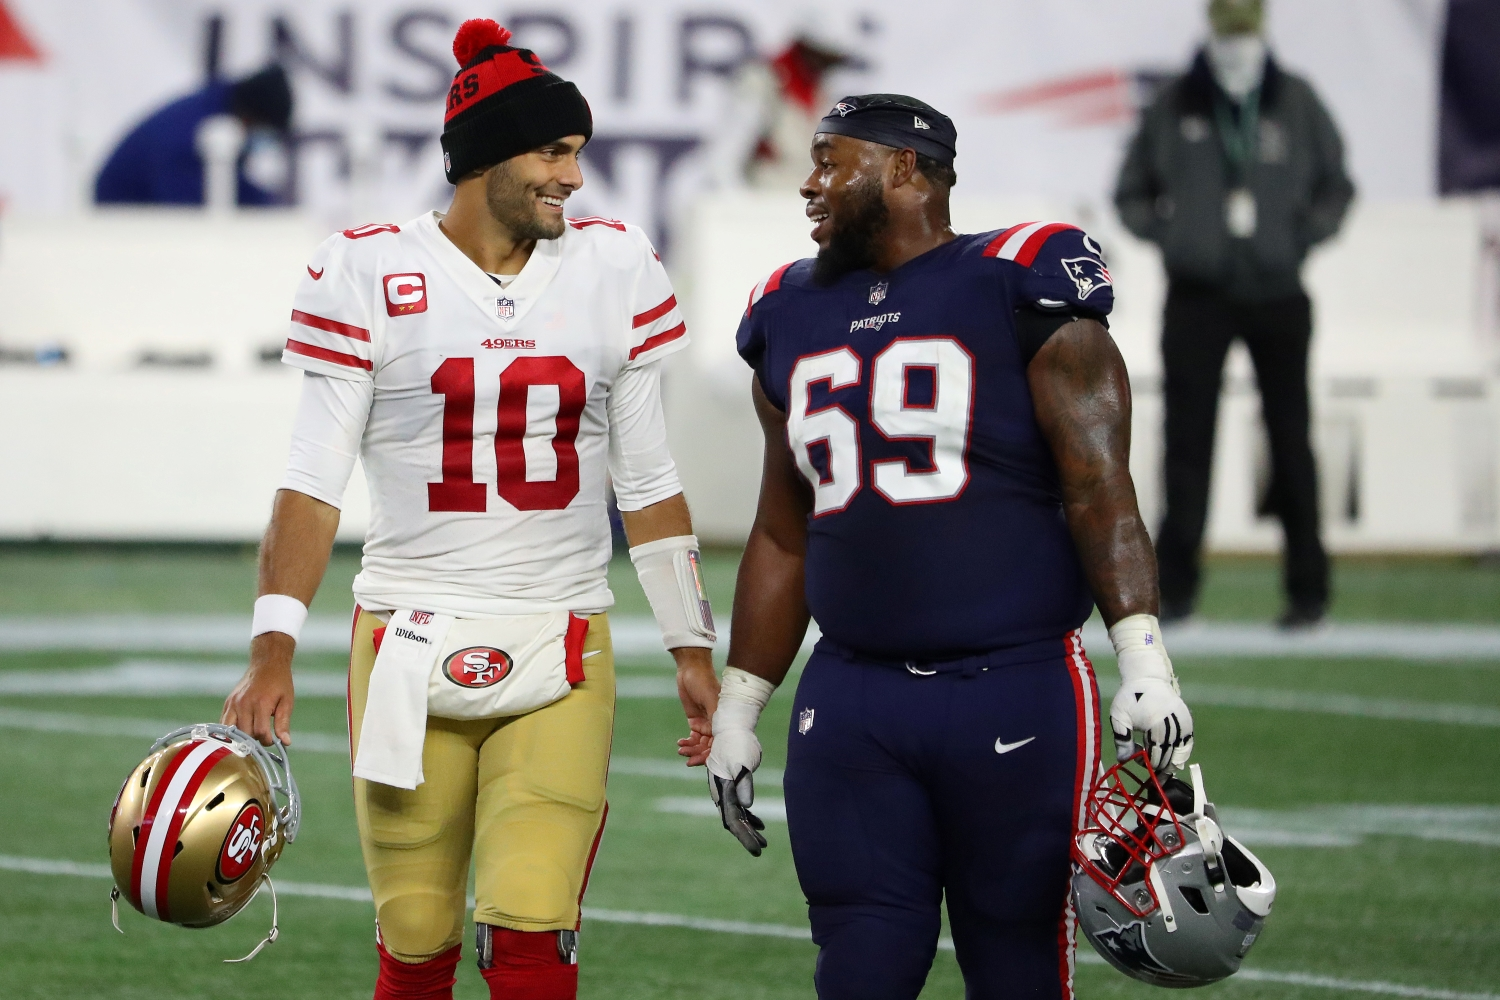 San Francisco 49ers quarterback Jimmy Garoppolo greets former New England Patriots teammate Shaq Mason during a game from the 2020 NFL season.